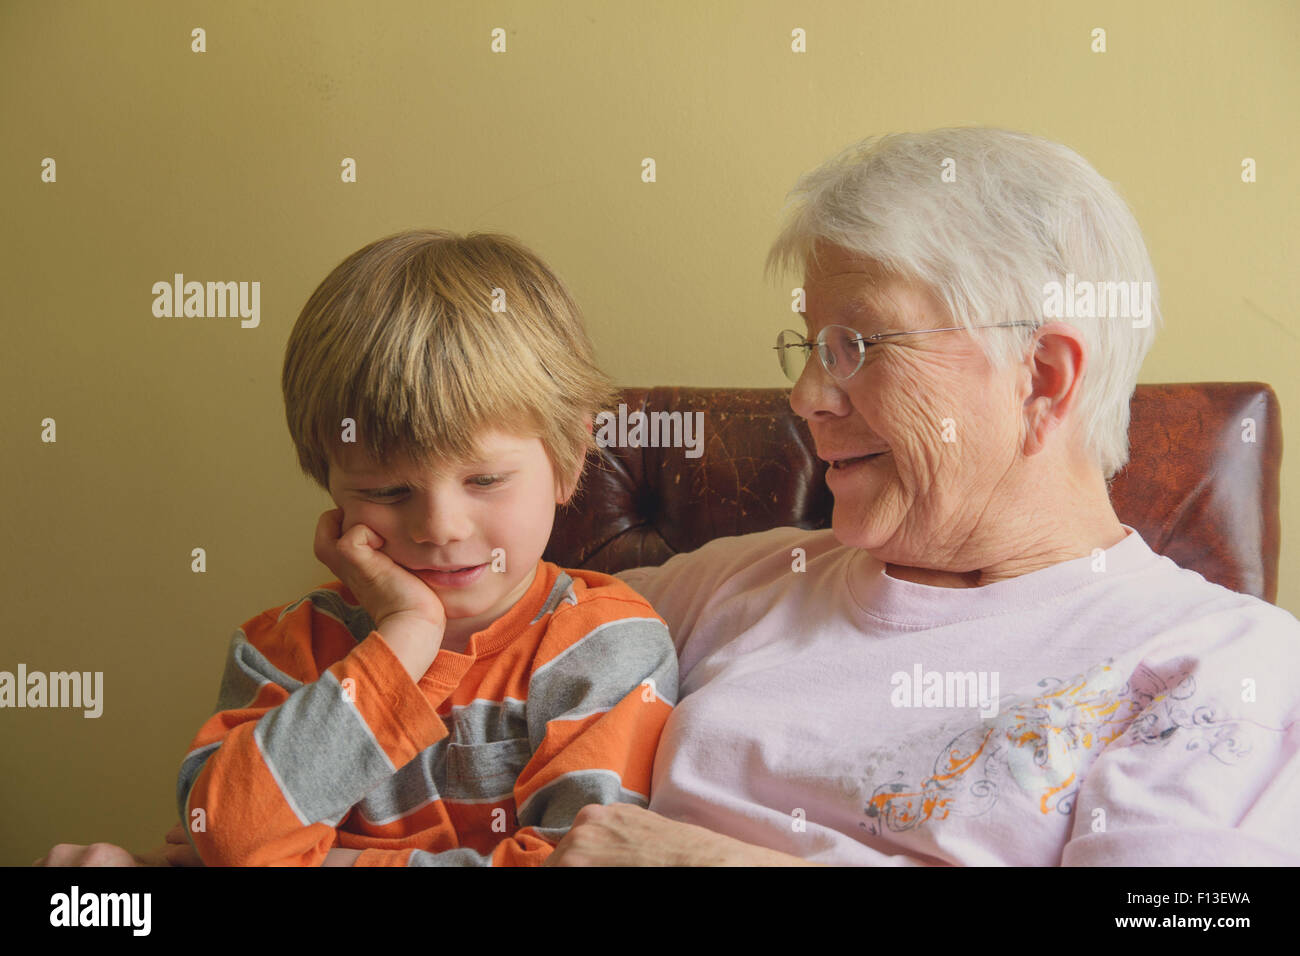 Boy sitting with his grandmother - Stock Image